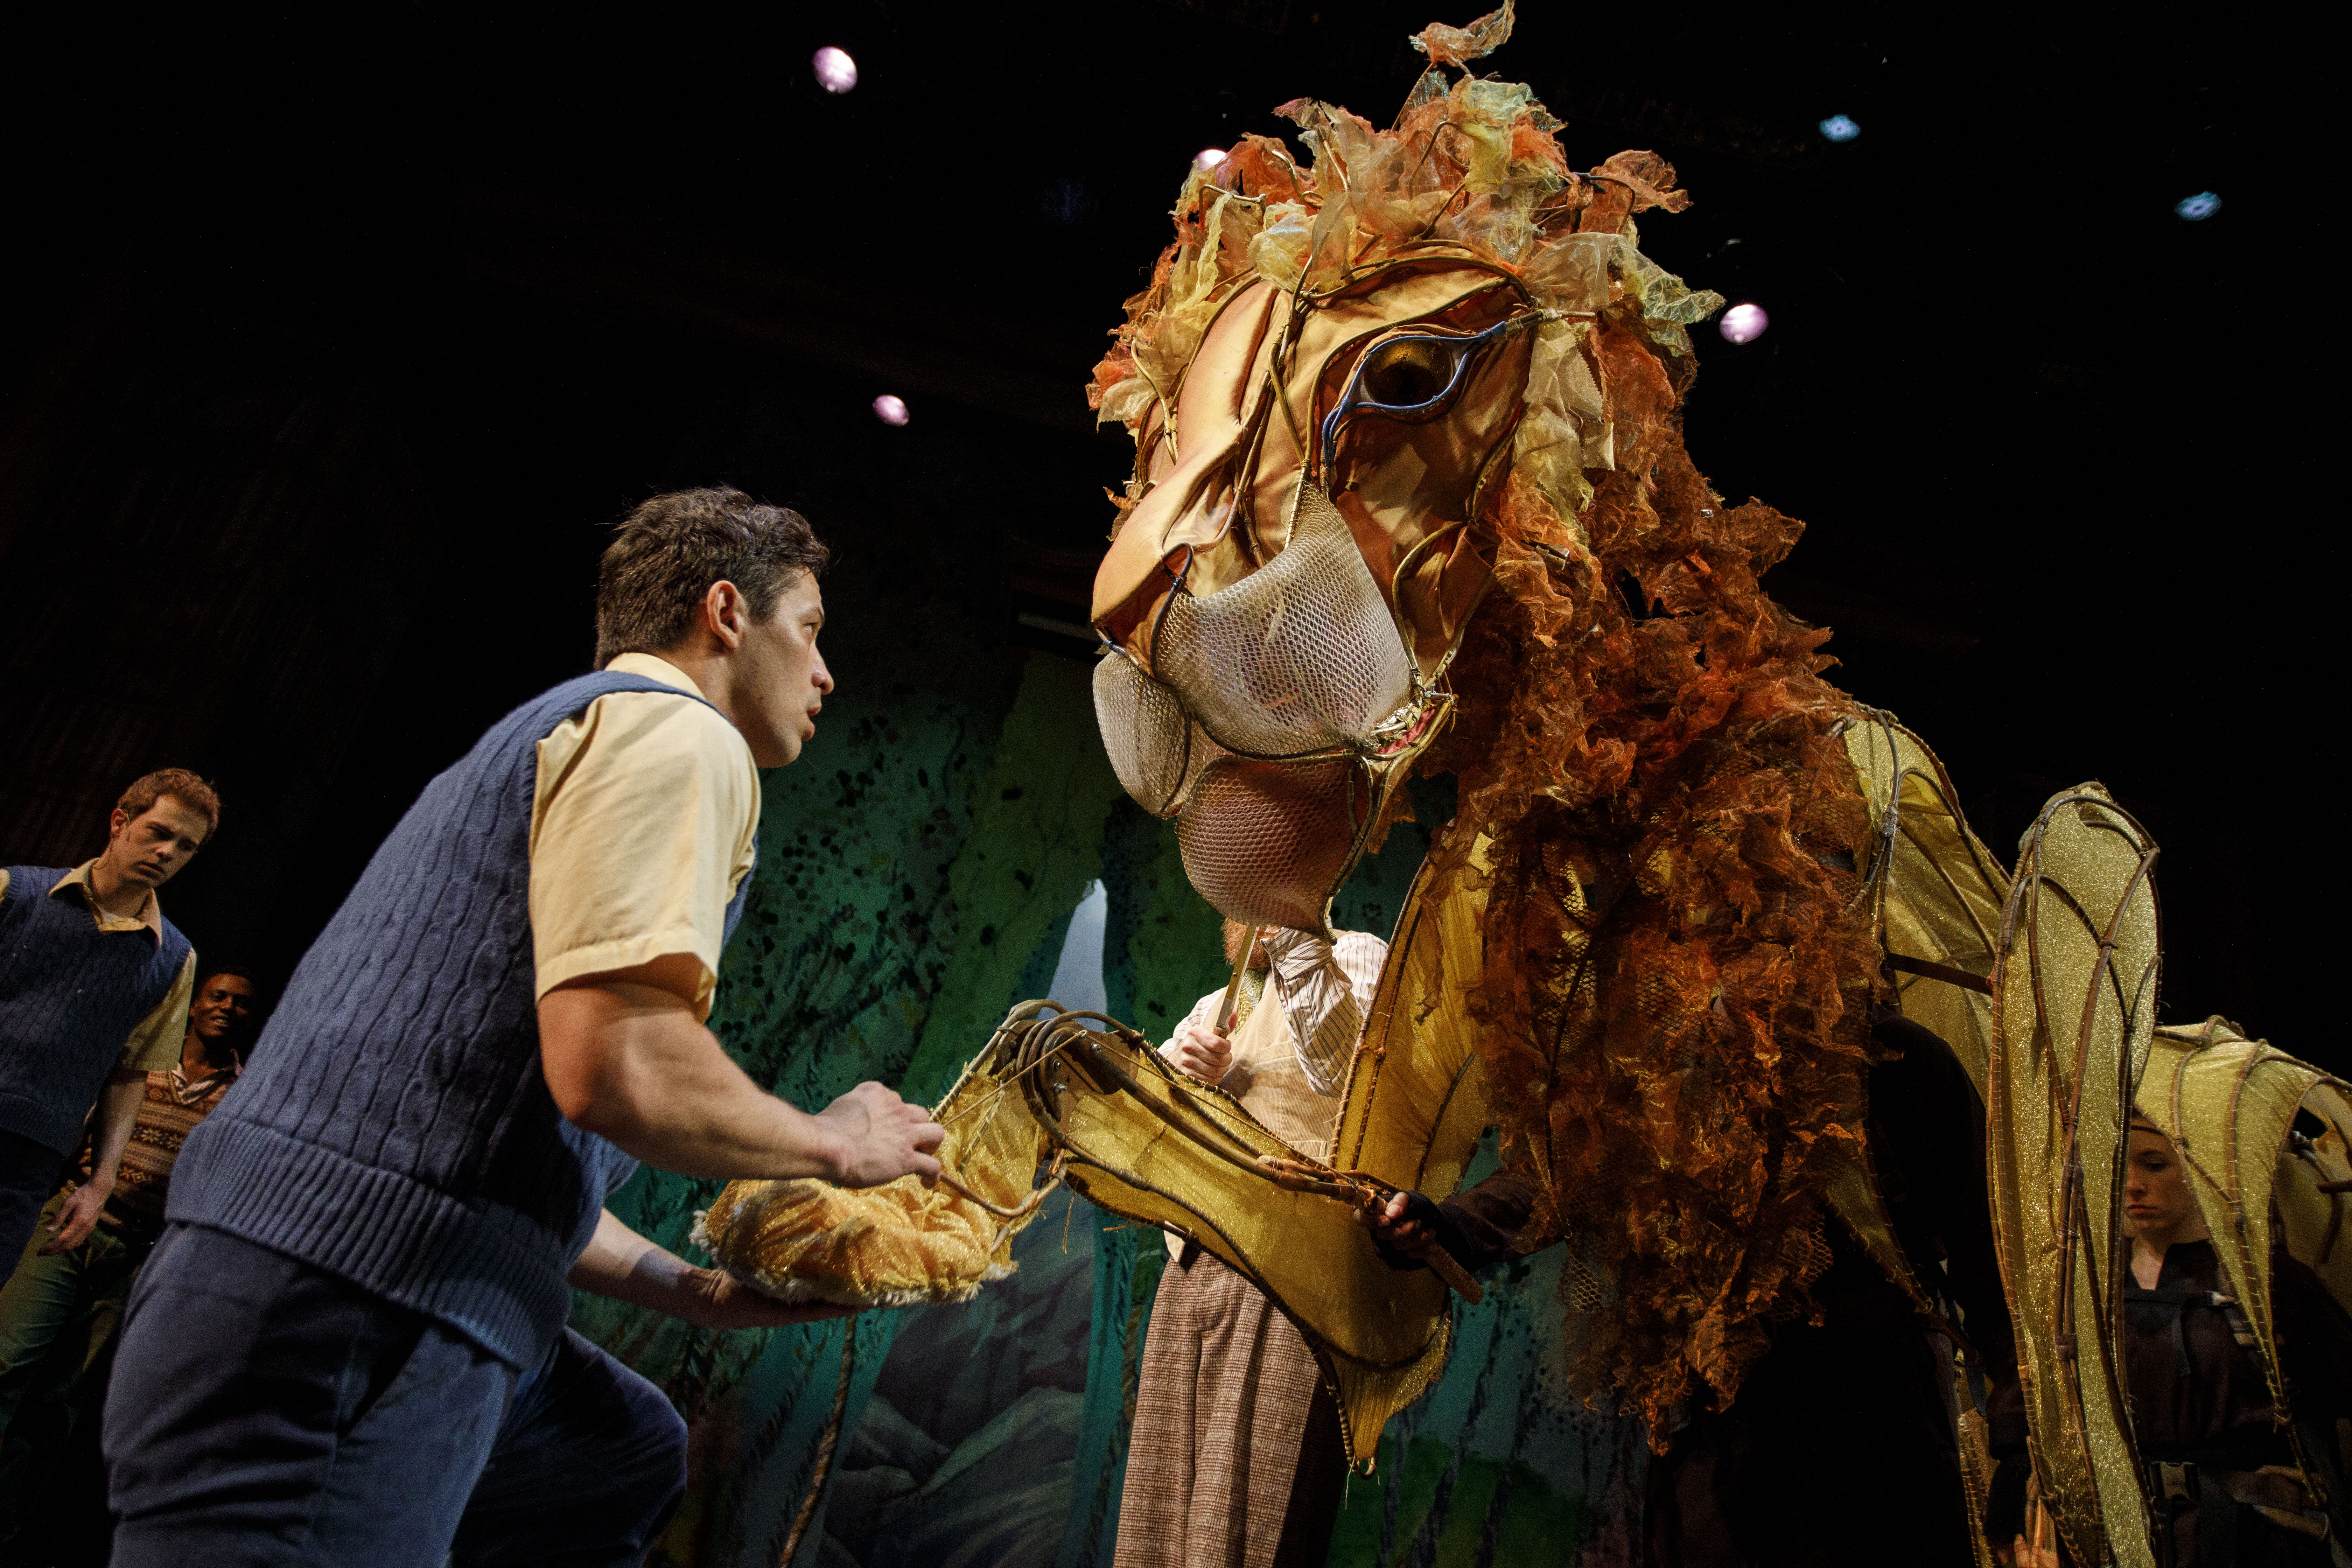 Ryan Sellers as Edmund Pevensie (dancer) with Aslan the Lion.